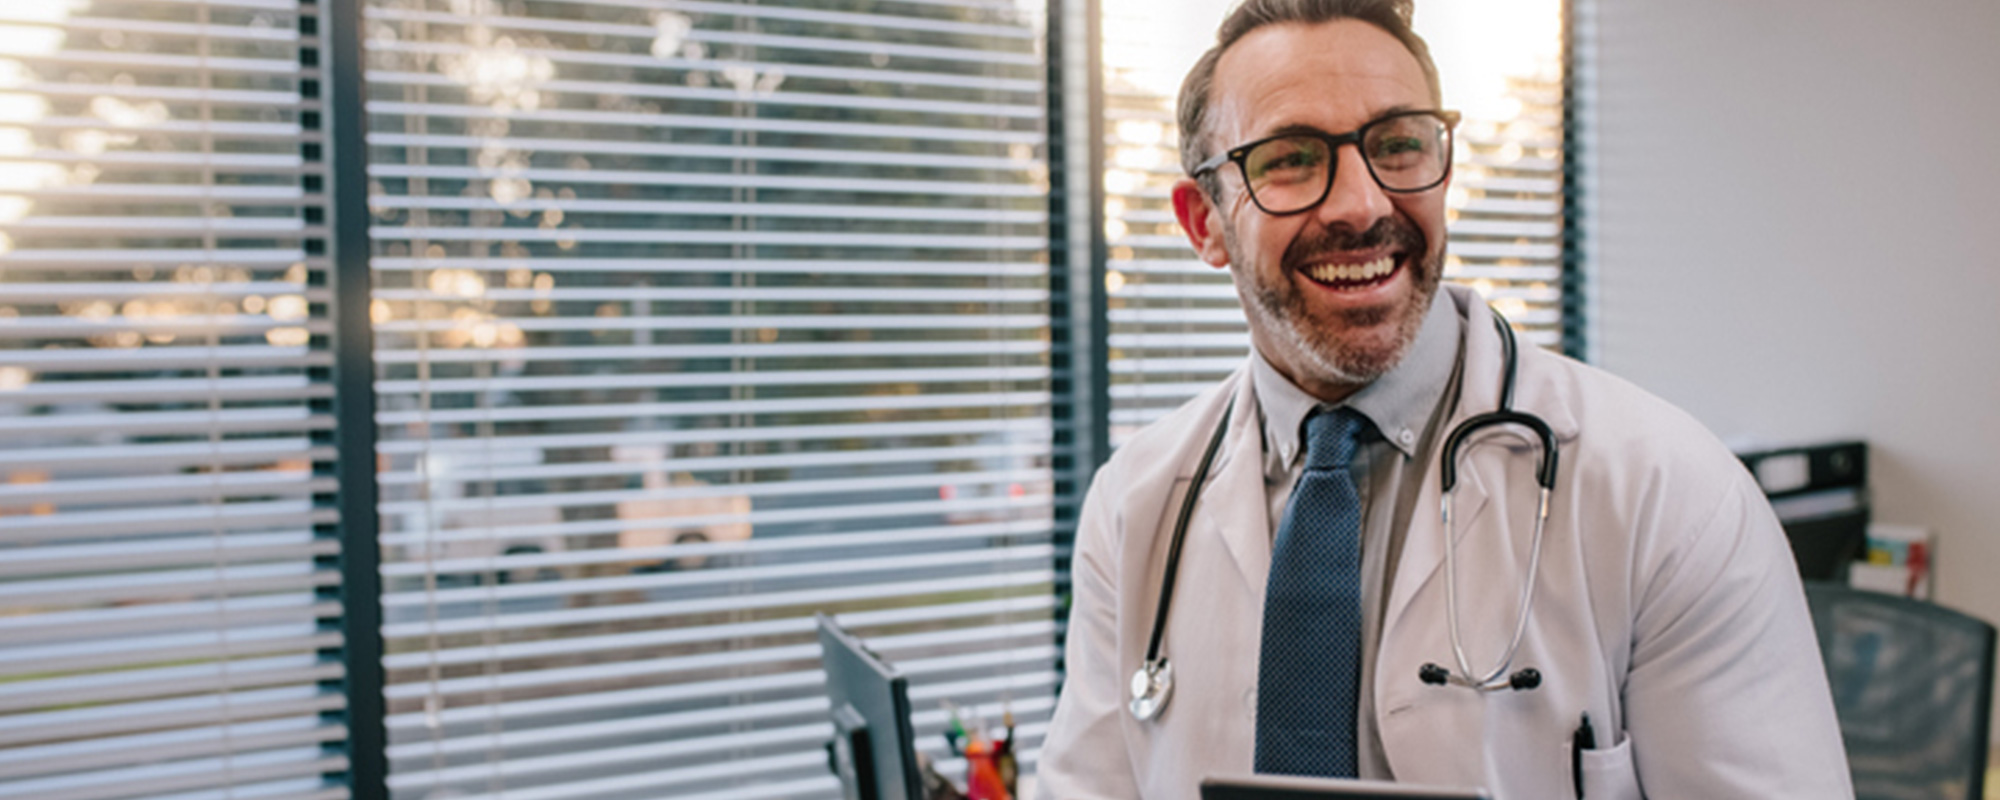 Male doctor smiling in office holding an ipad